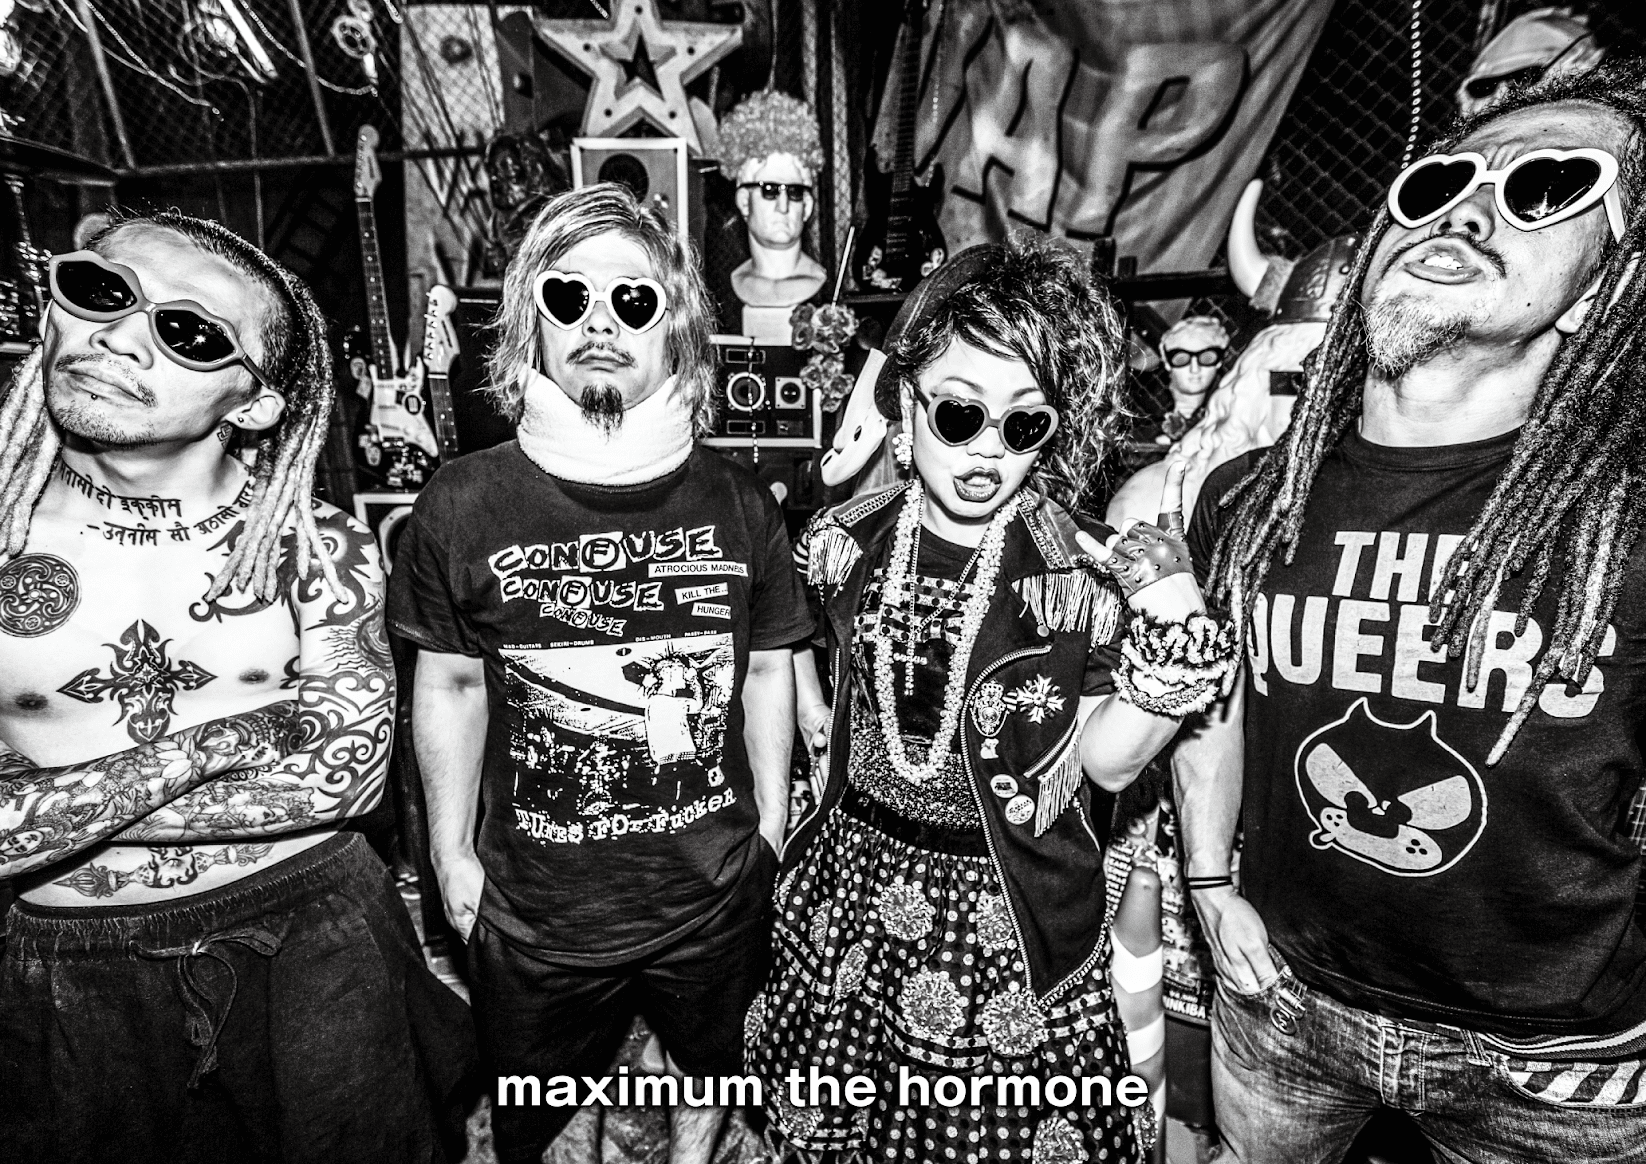 Maximum The Hormone 極限荷爾蒙